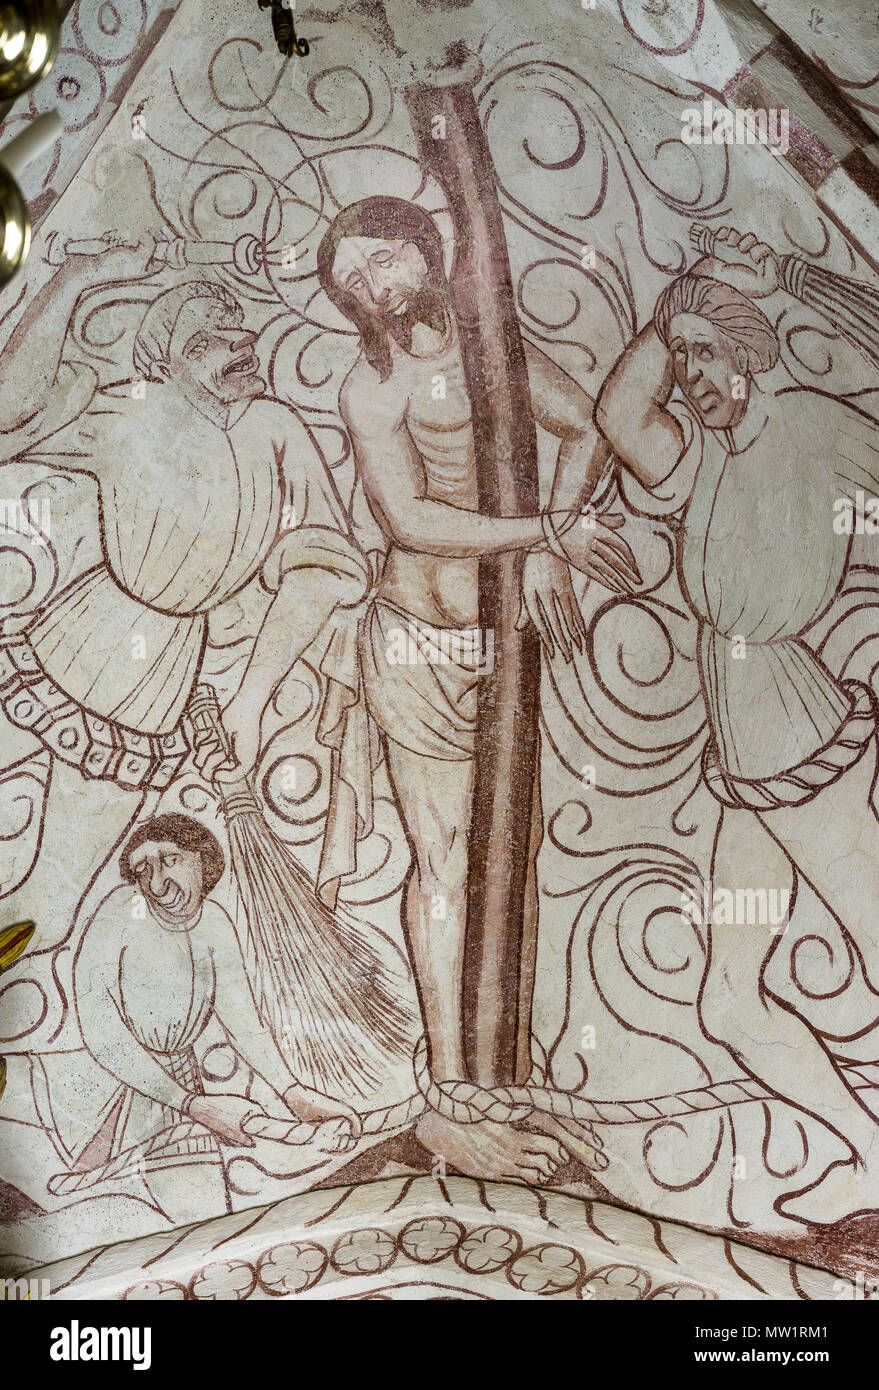 The Flagellation of Christ or Christ at the pillar, a gothic church fresco in Bronnestad, Sweden, May 11, 2018 - Stock Image